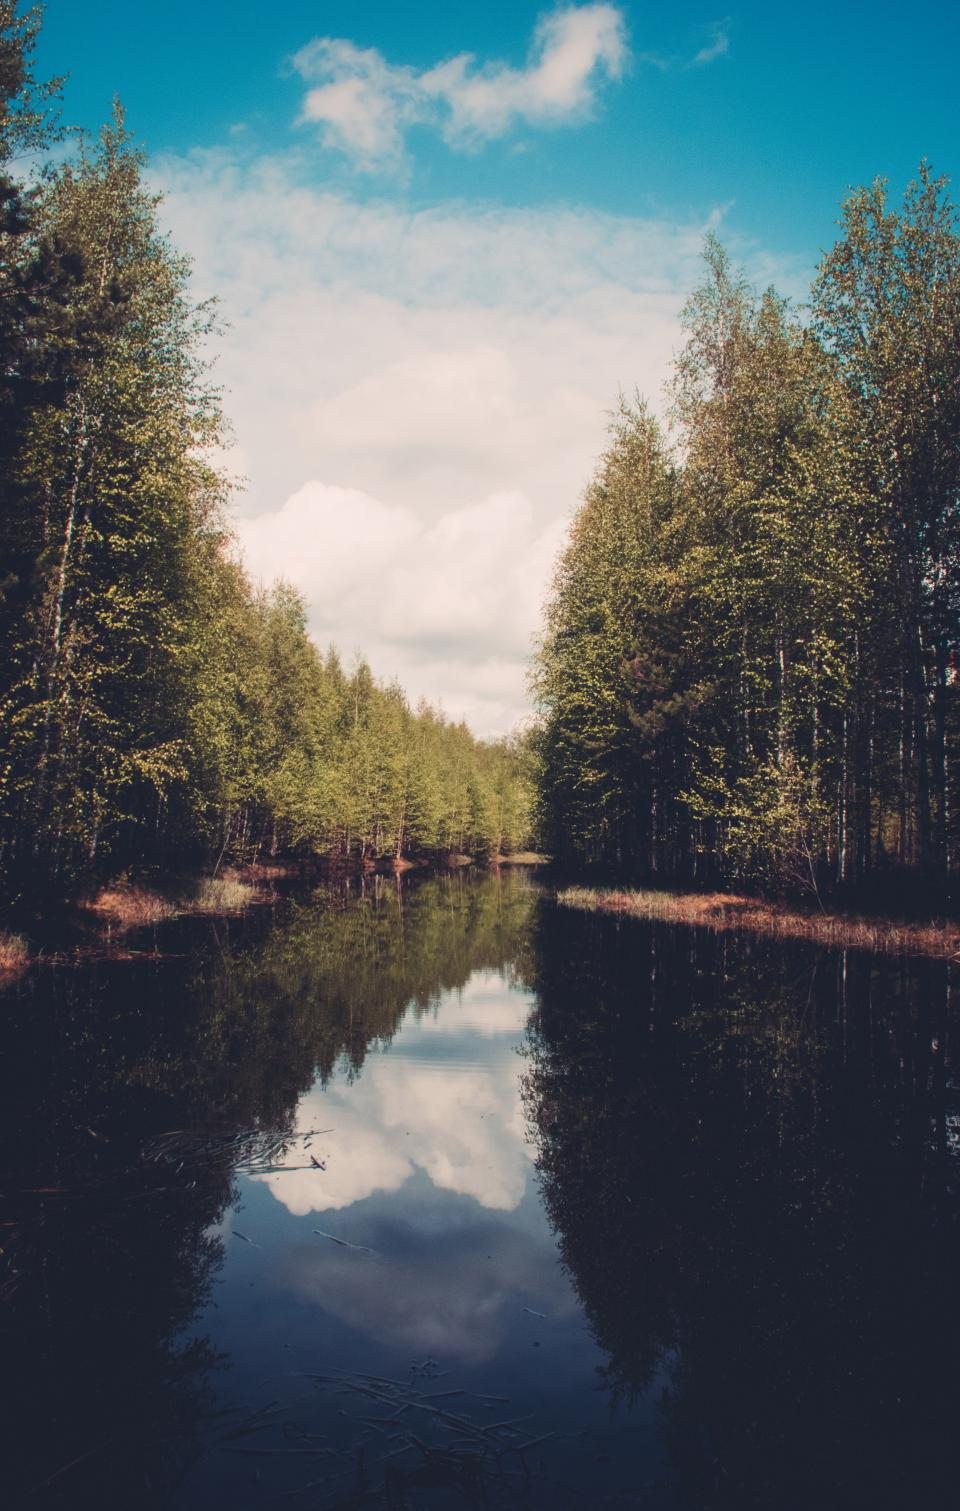 lake, river, water, reflection, trees, forest, woods, nature, outdoors, landscape, sky, clouds, sunny, summer